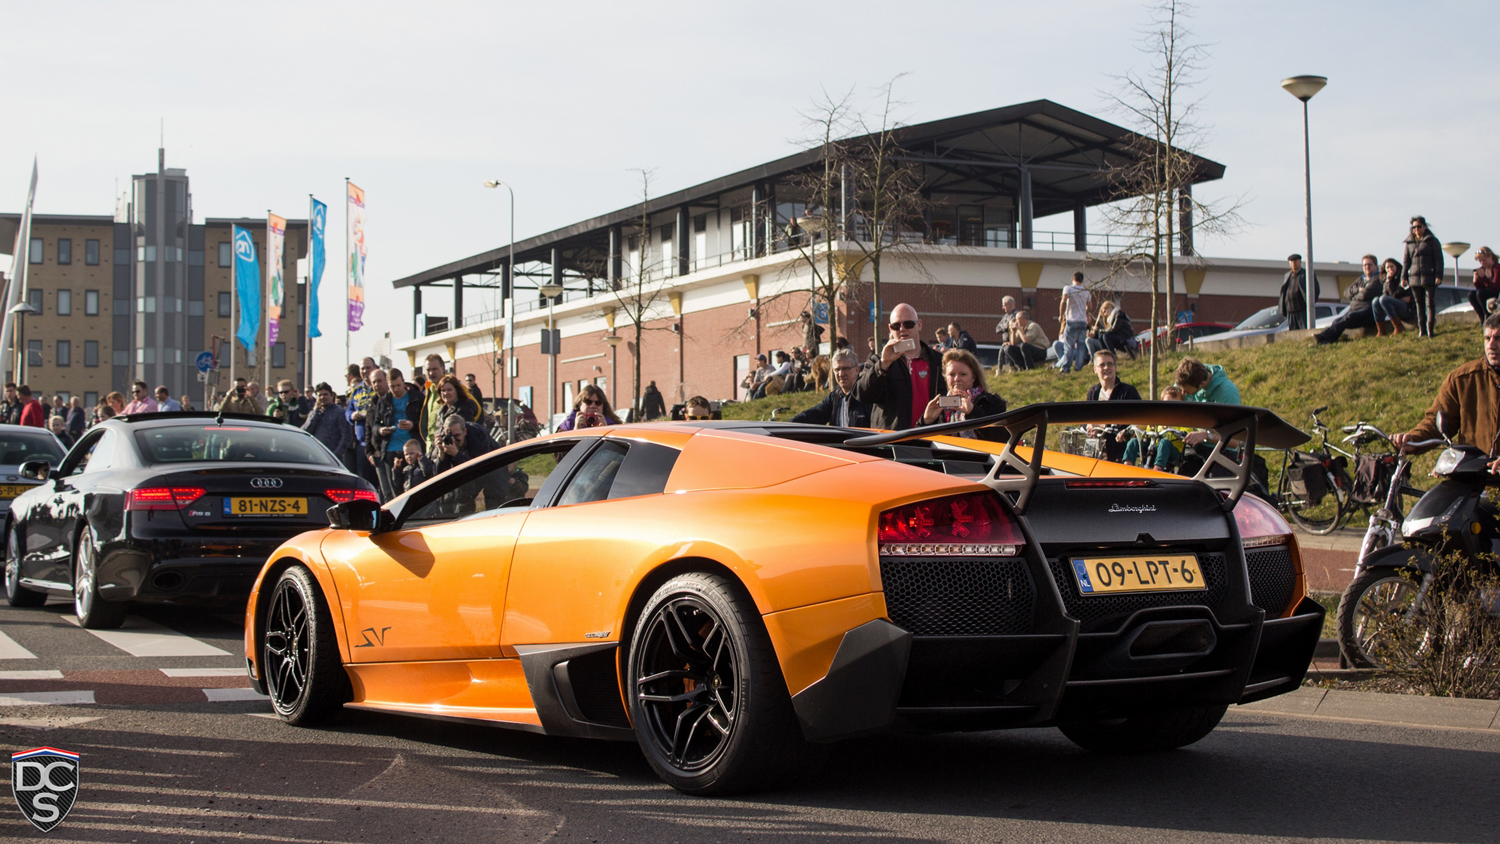 200 Supercars Gather For Quot Need For Speed Quot Movie Premiere